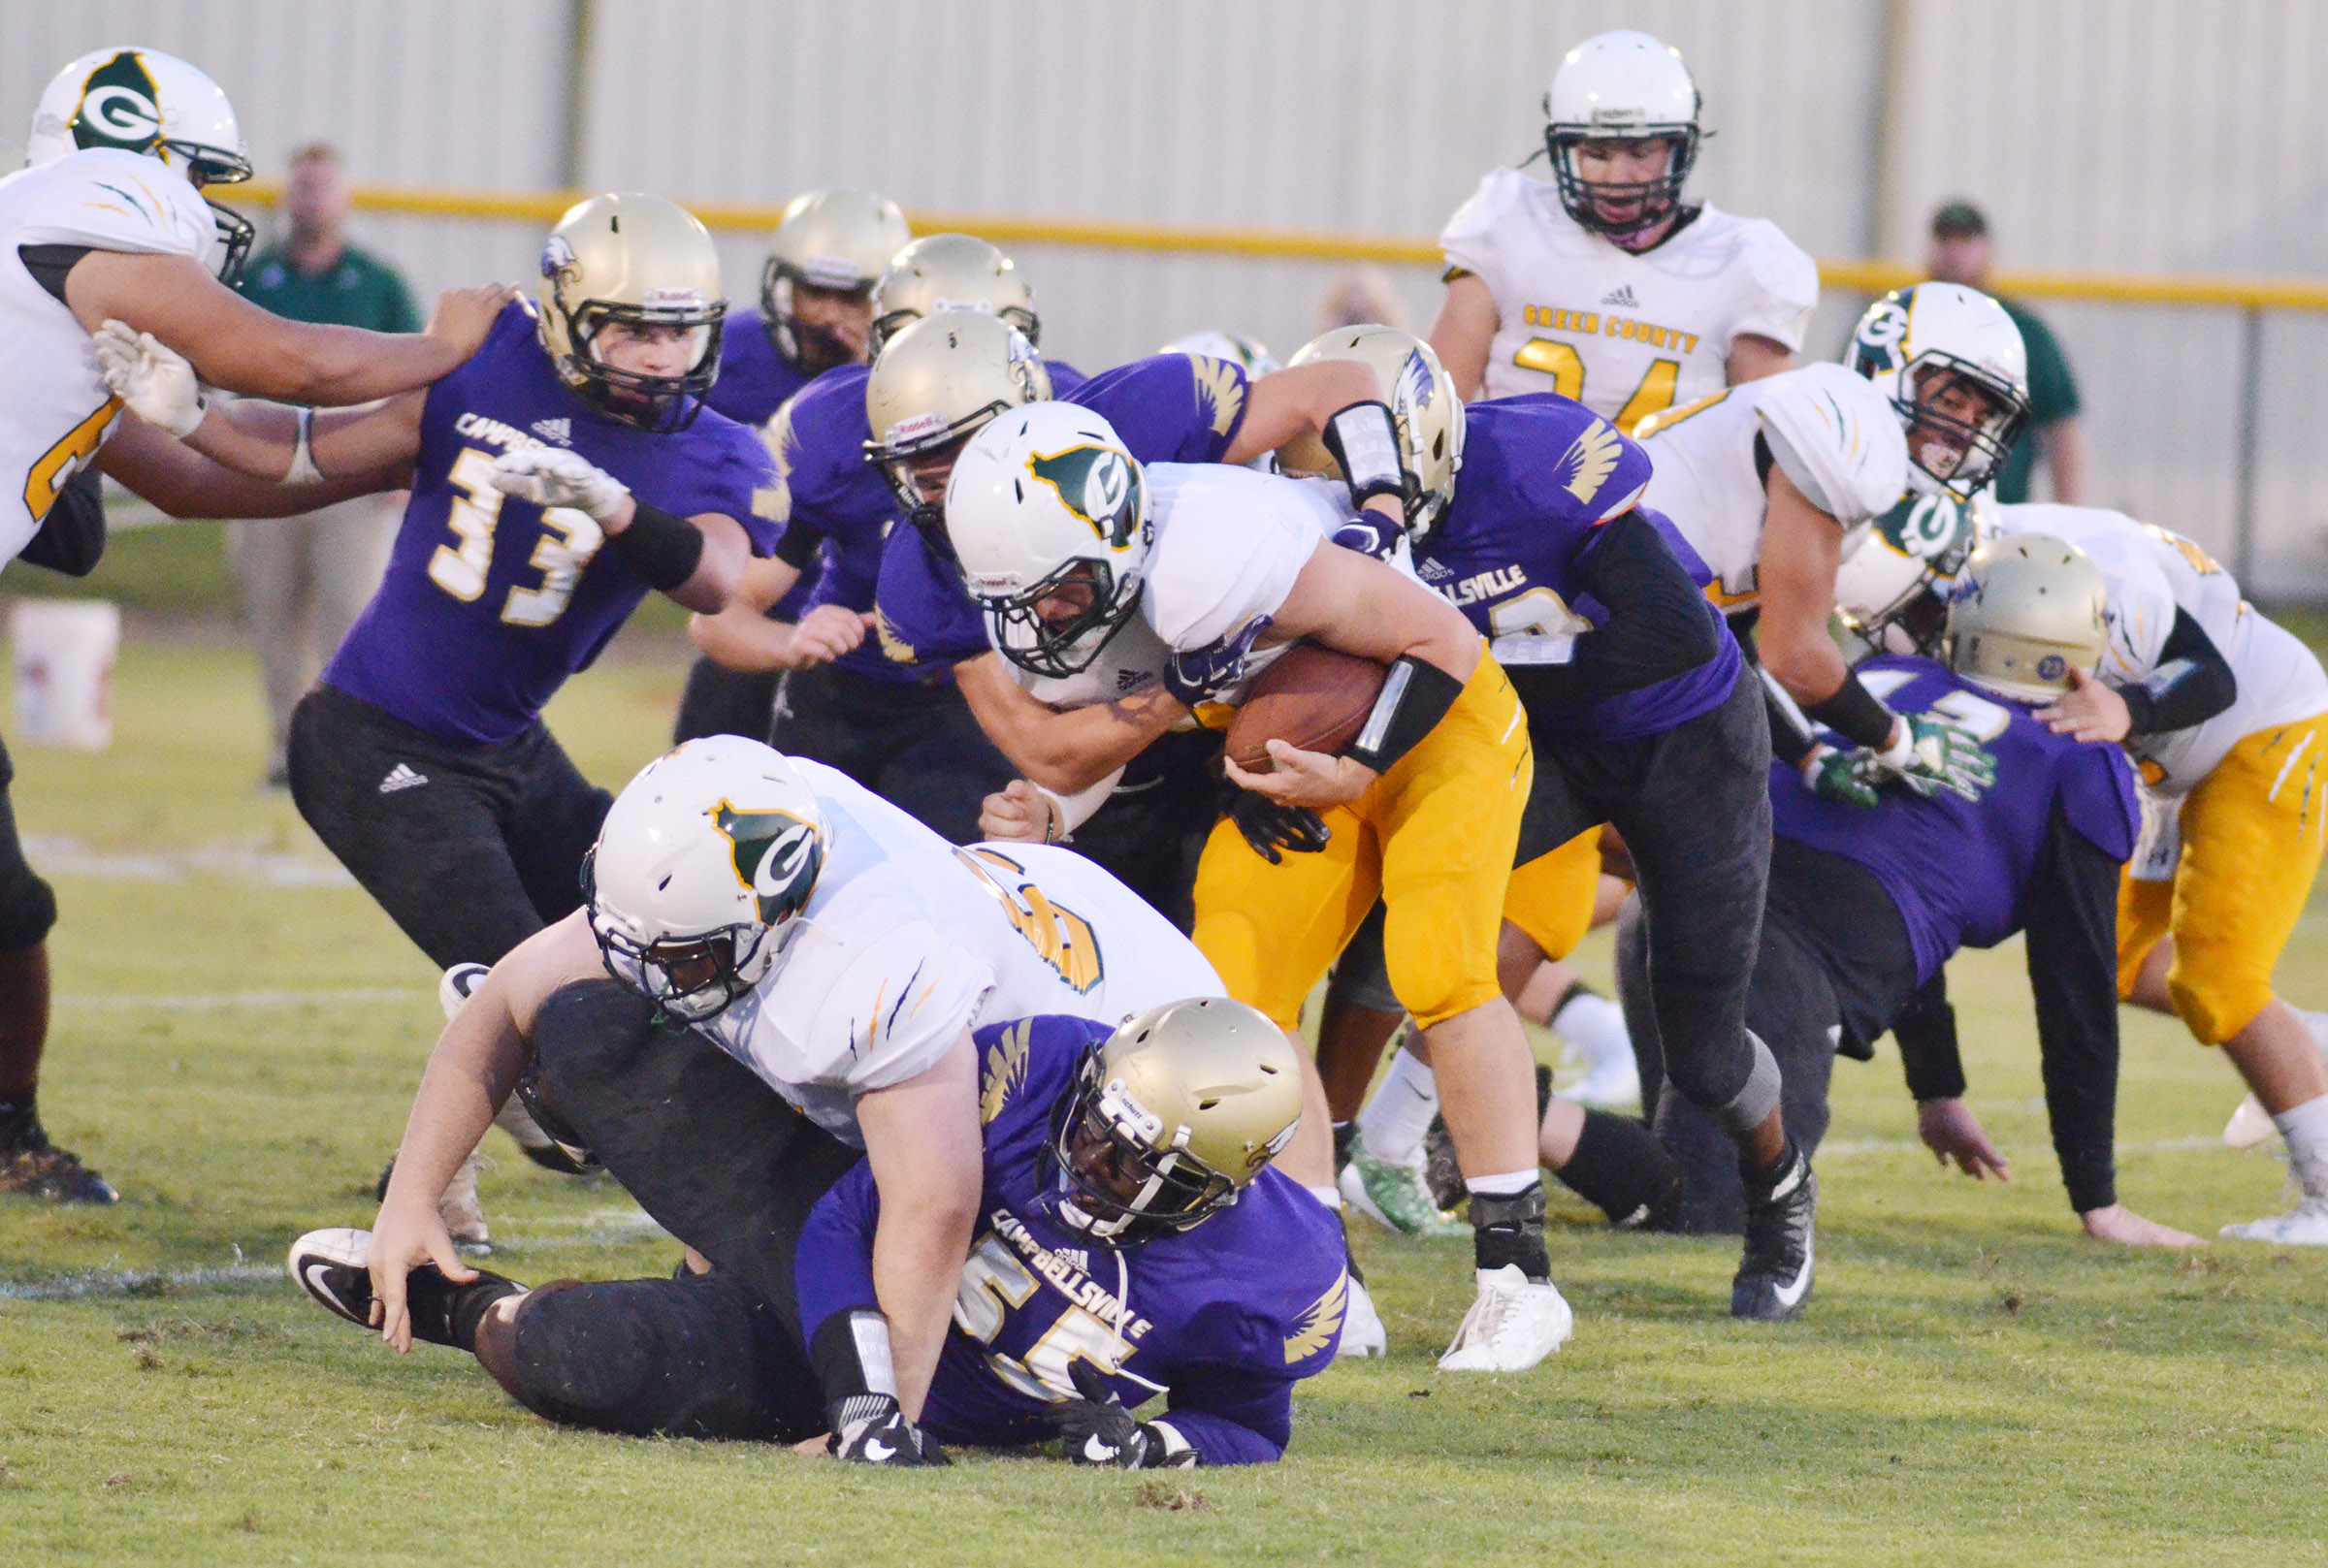 CHS players tackle.